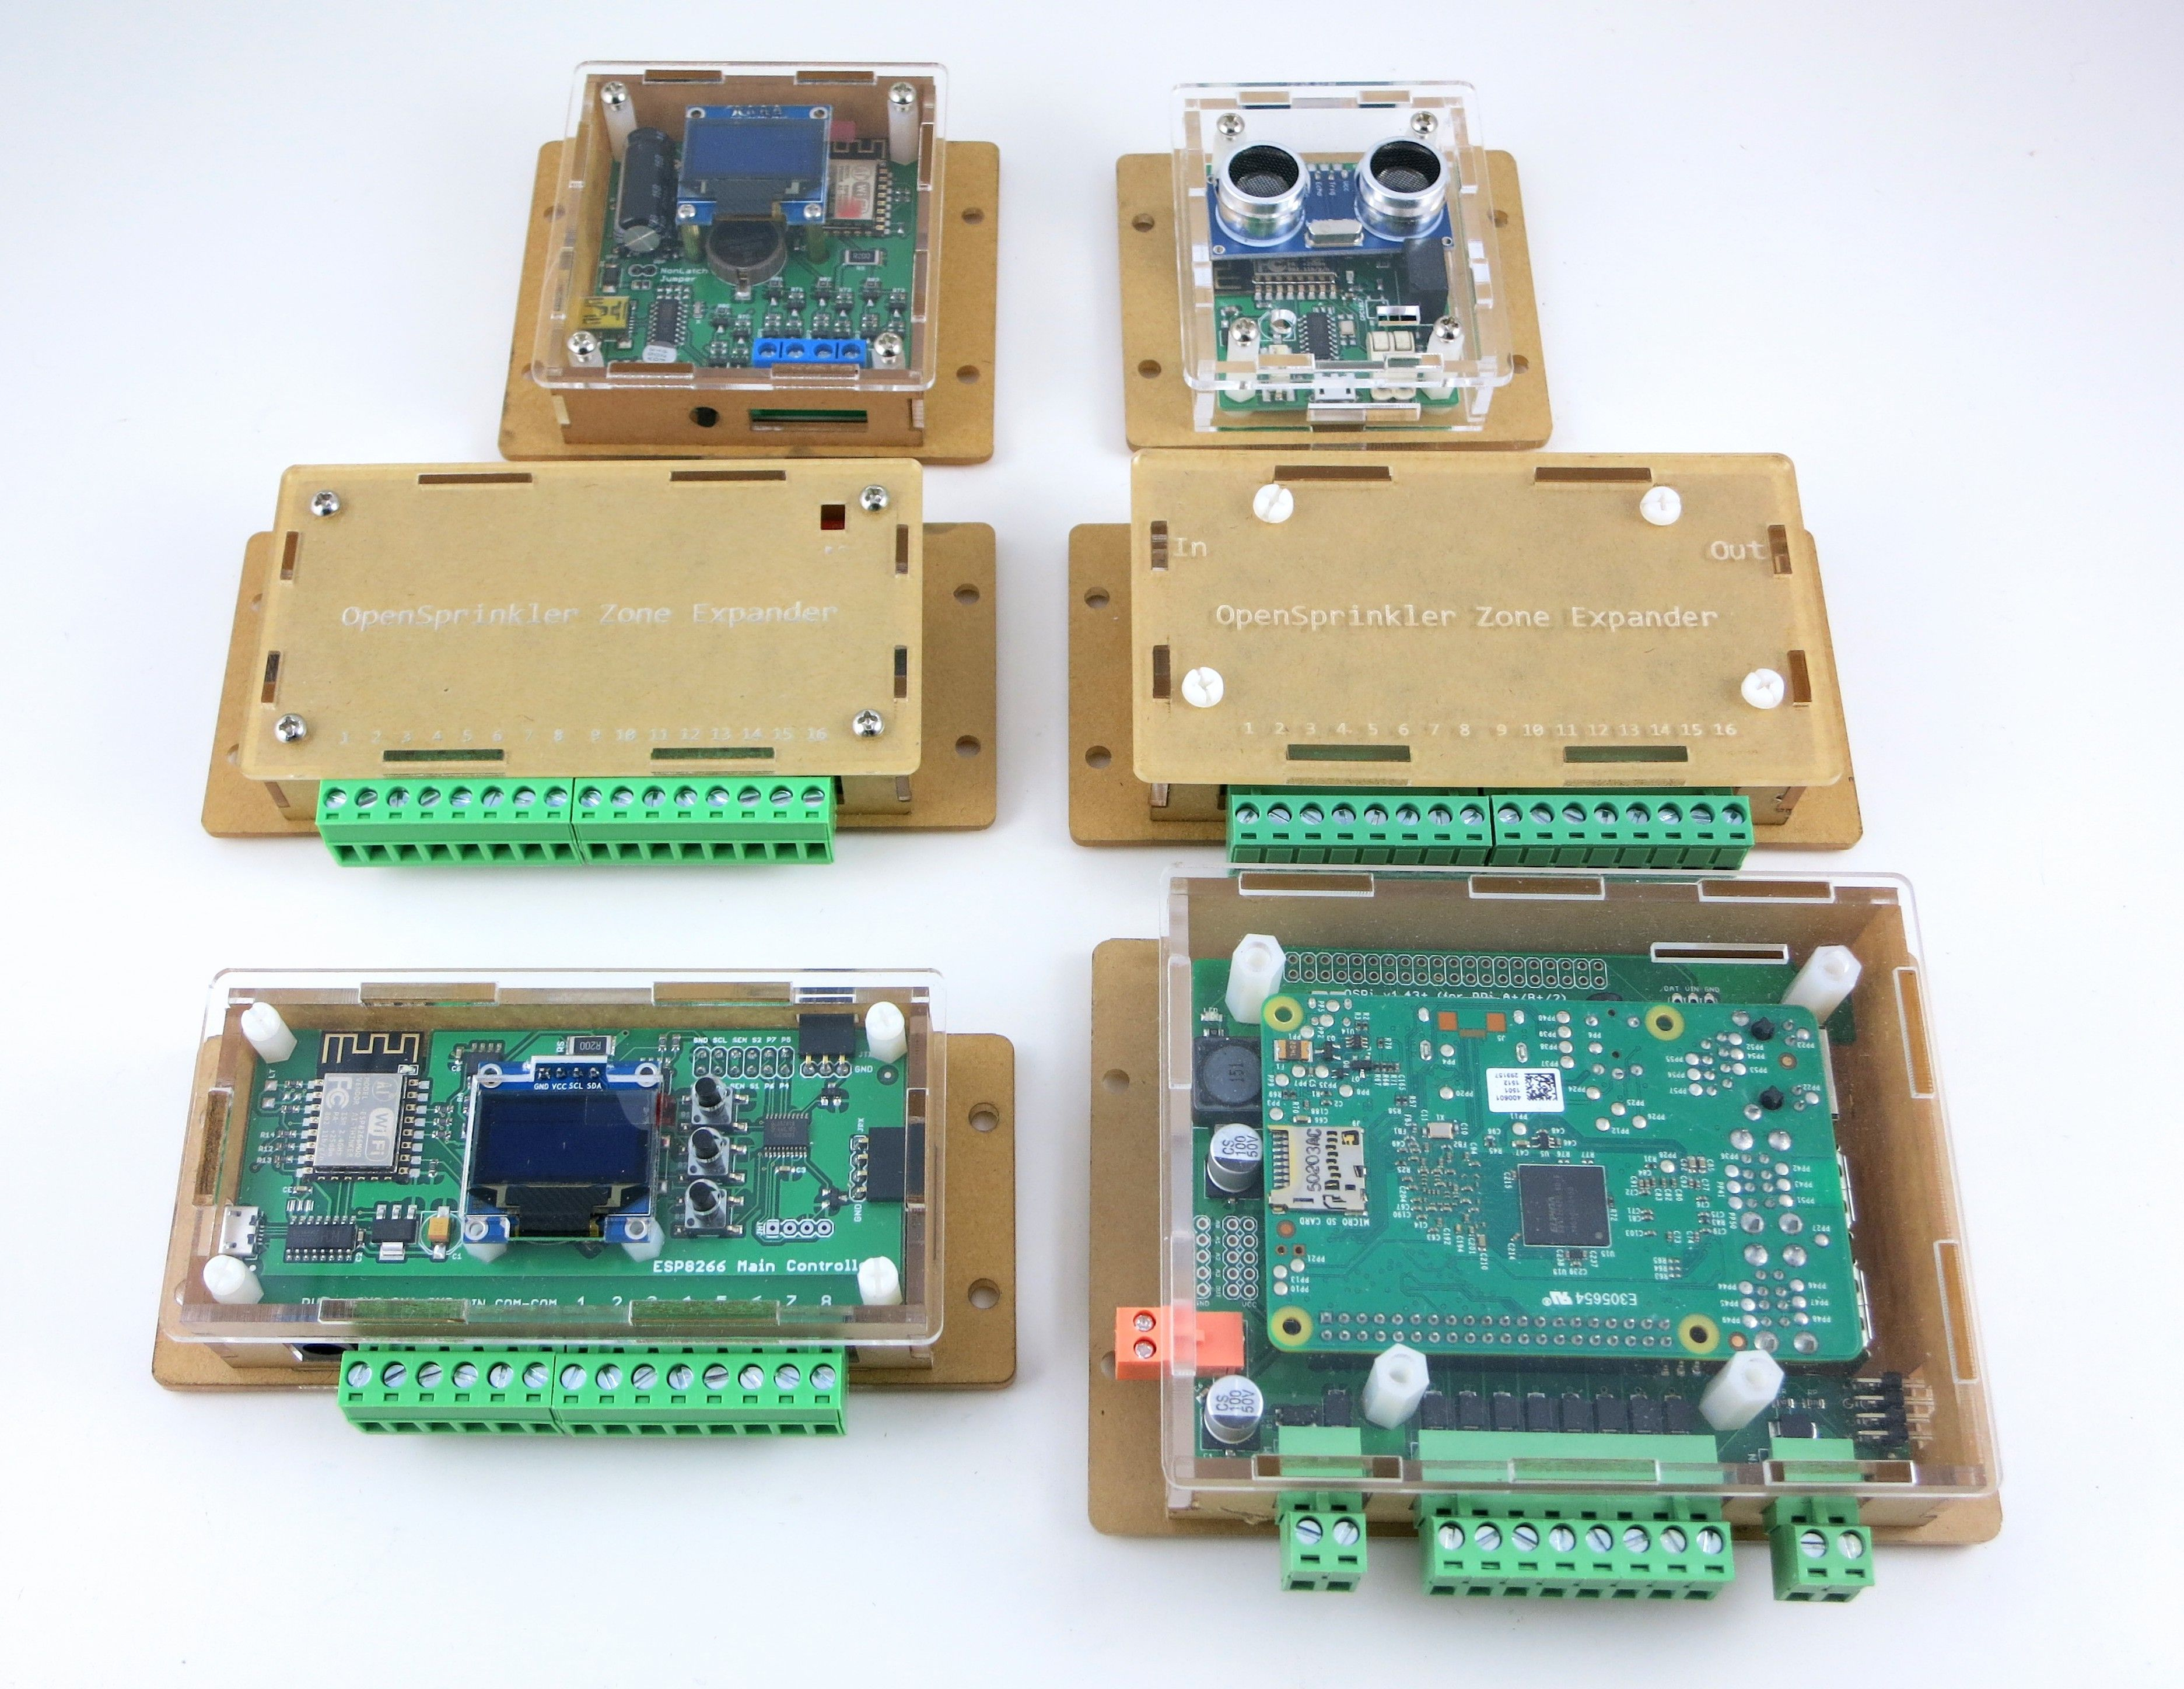 Pcb Assembling Tools Offer Recommendations On The Effective Configuration Of Designs Instructing You On Ne Printed Circuit Board Circuit Board Printed Circuit